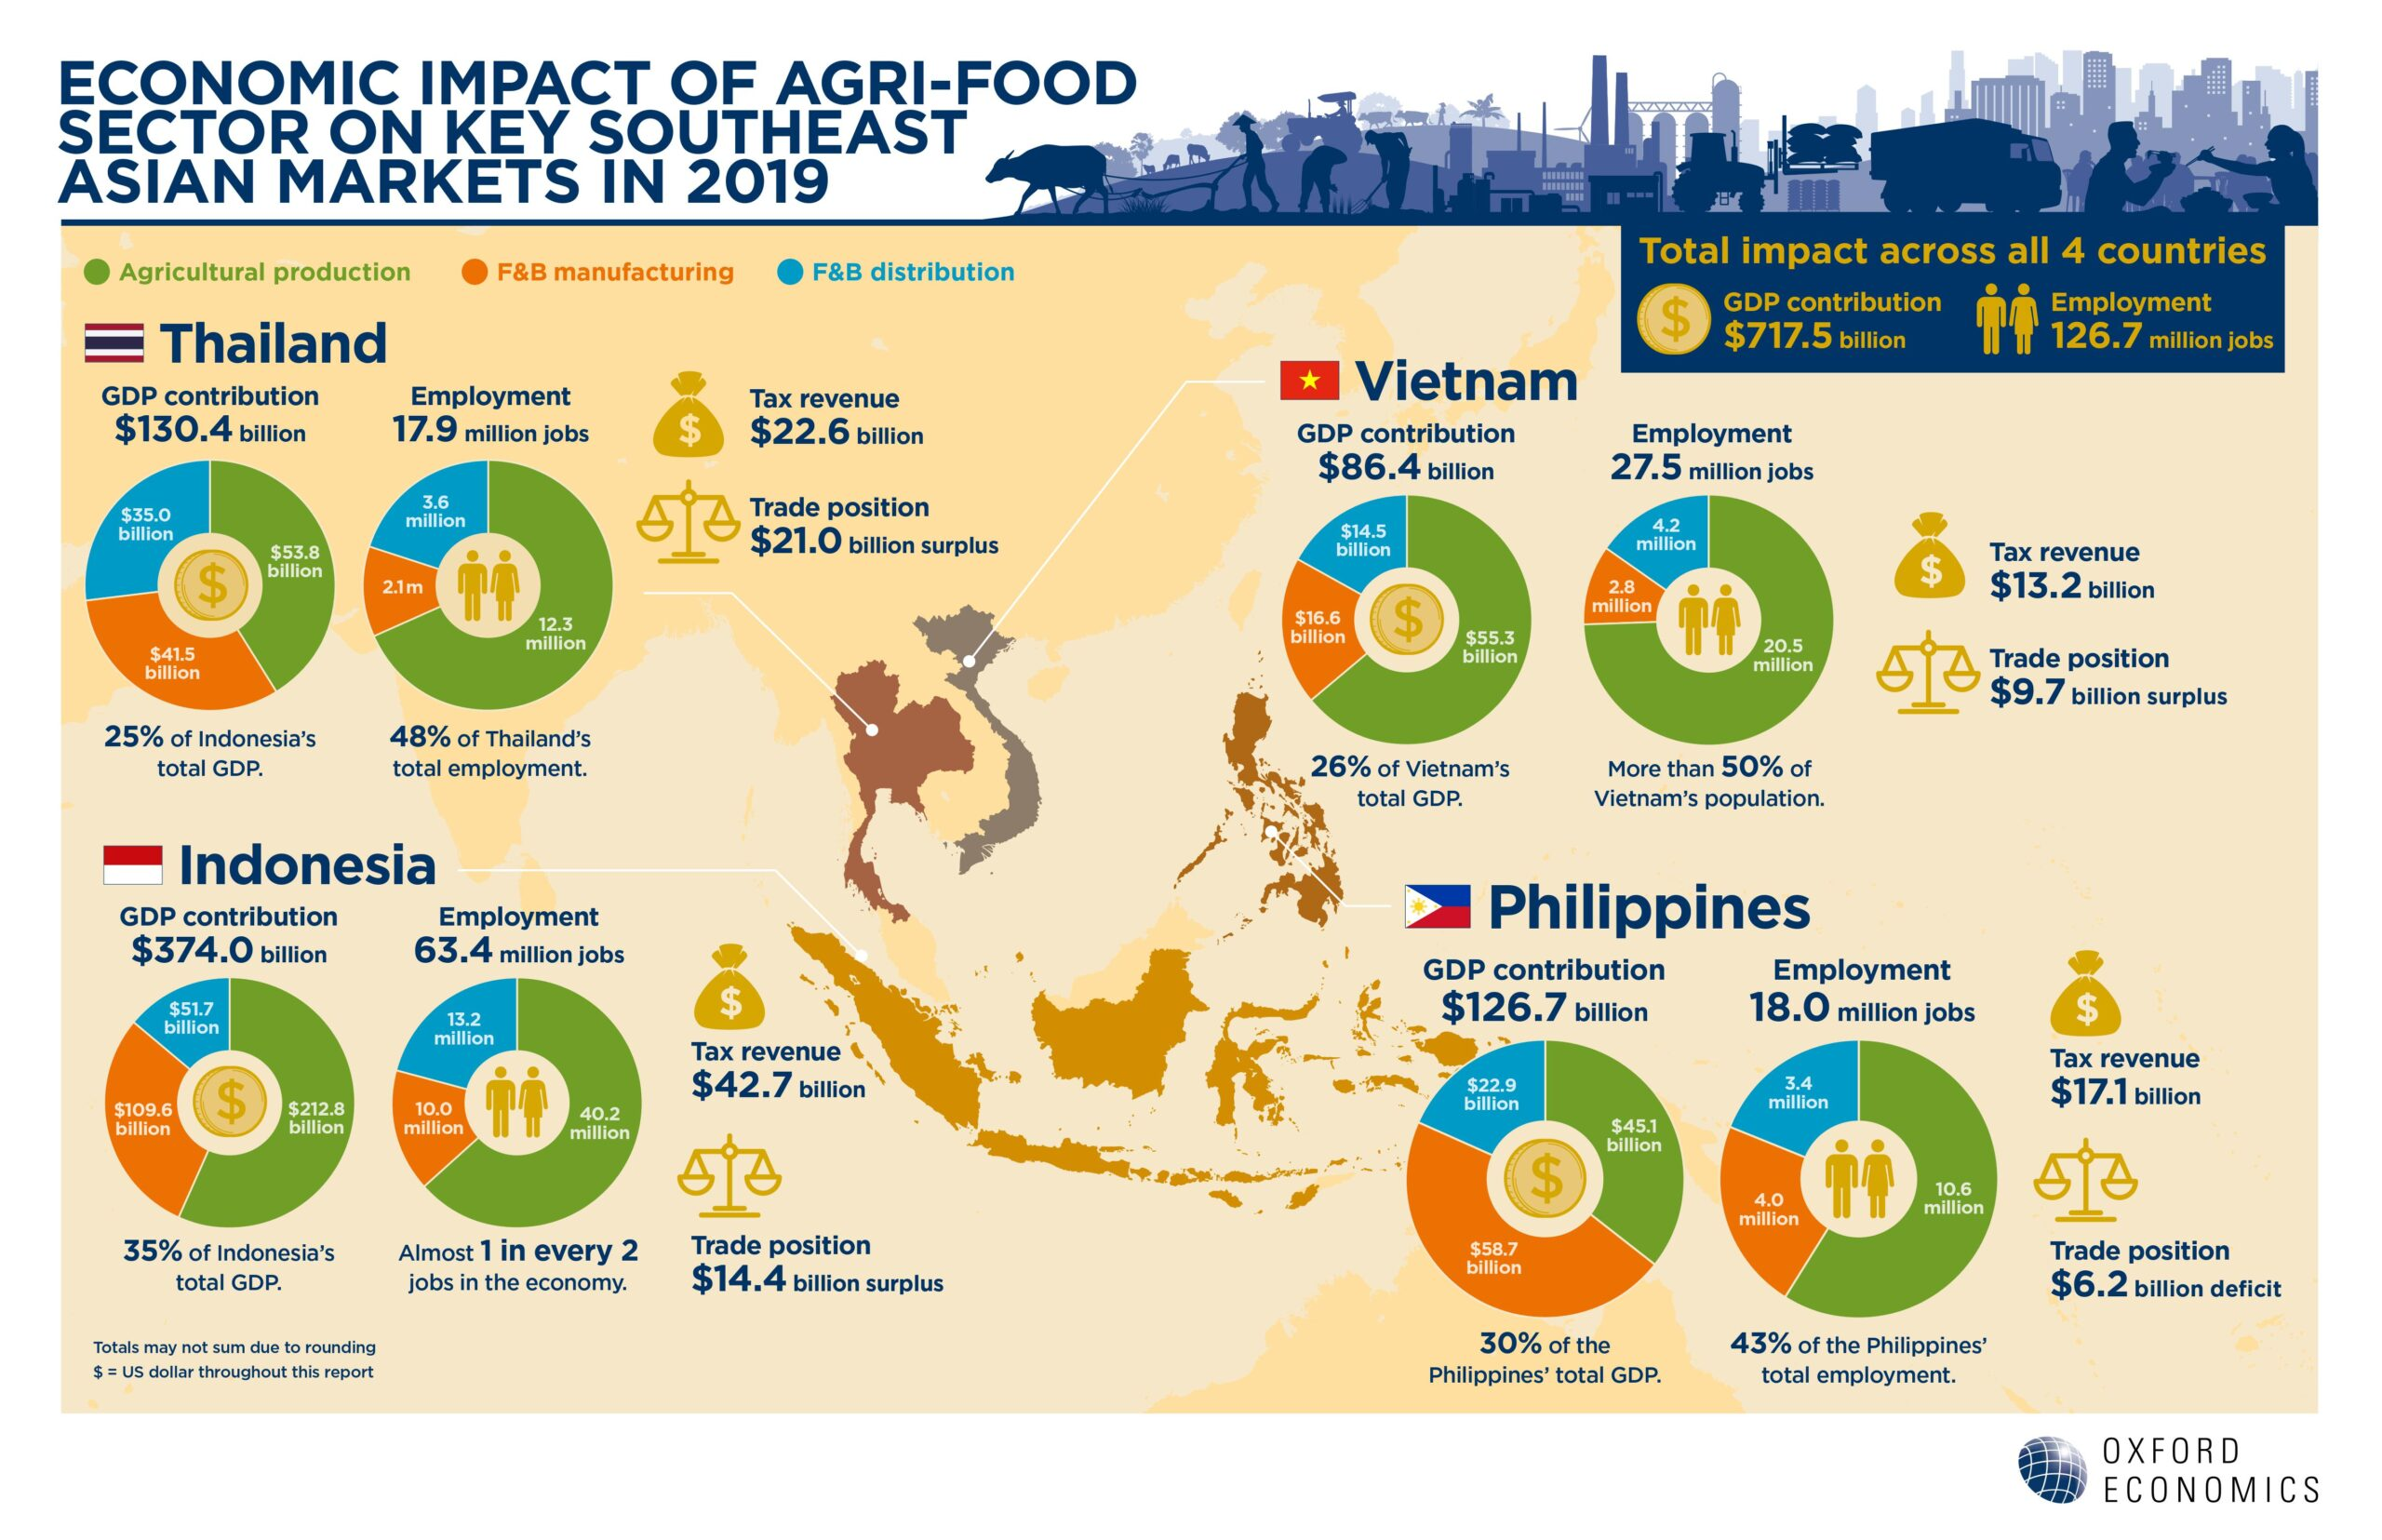 Infographic_Economic Impact of Agri-Food Sector in 2019